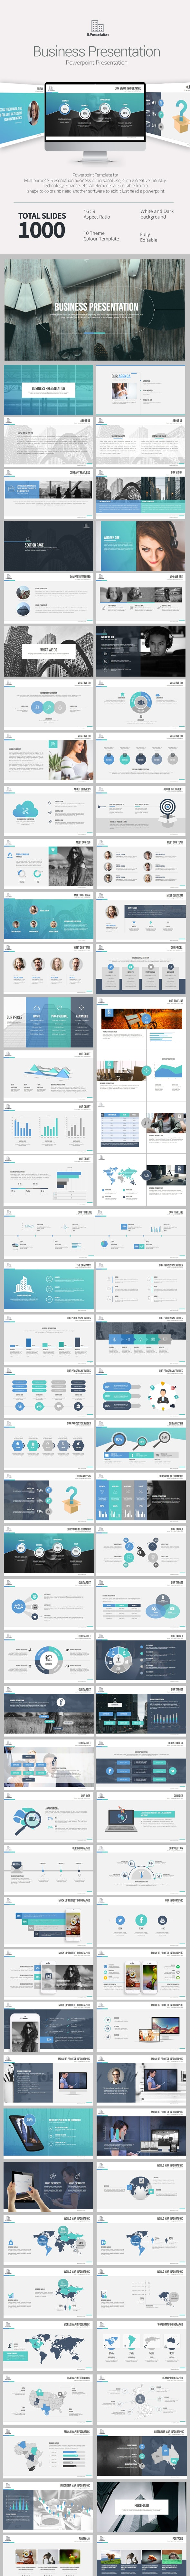 Business Presentation - PowerPoint Templates Presentation Templates